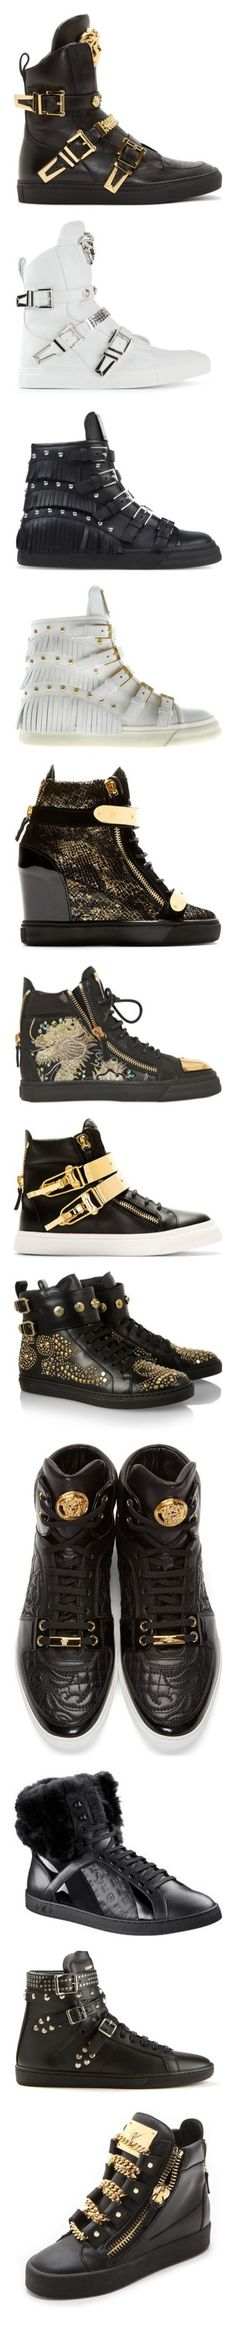 """Ultimate 'Designer Sneaker' Collection Pt. II"" by dazzlingdondiva ❤ liked on Polyvore featuring shoes, sneakers, men, versace, black leather shoes, versace sneakers, leather hi top sneakers, black hi tops, leather high top sneakers and white leather sneakers"